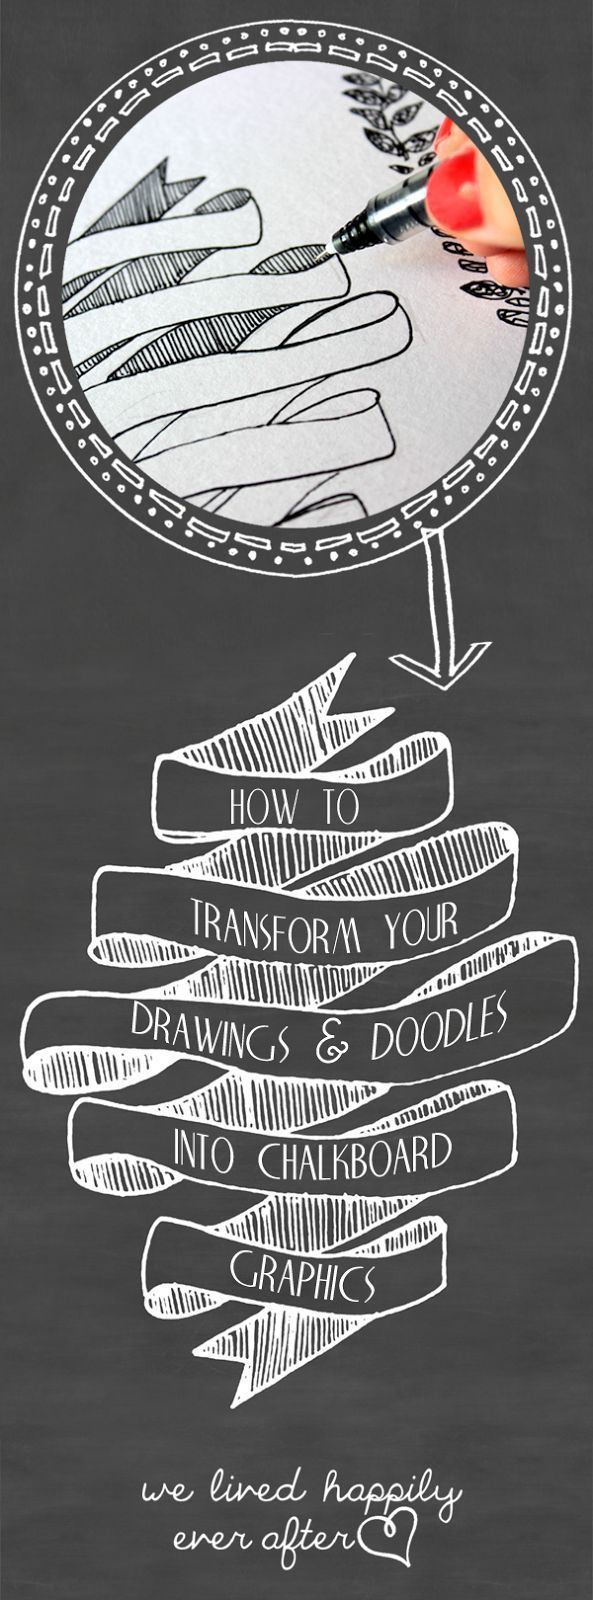 lovely handdrawn scroll     How to Transform your drawings & doodles into chalkboard graphics